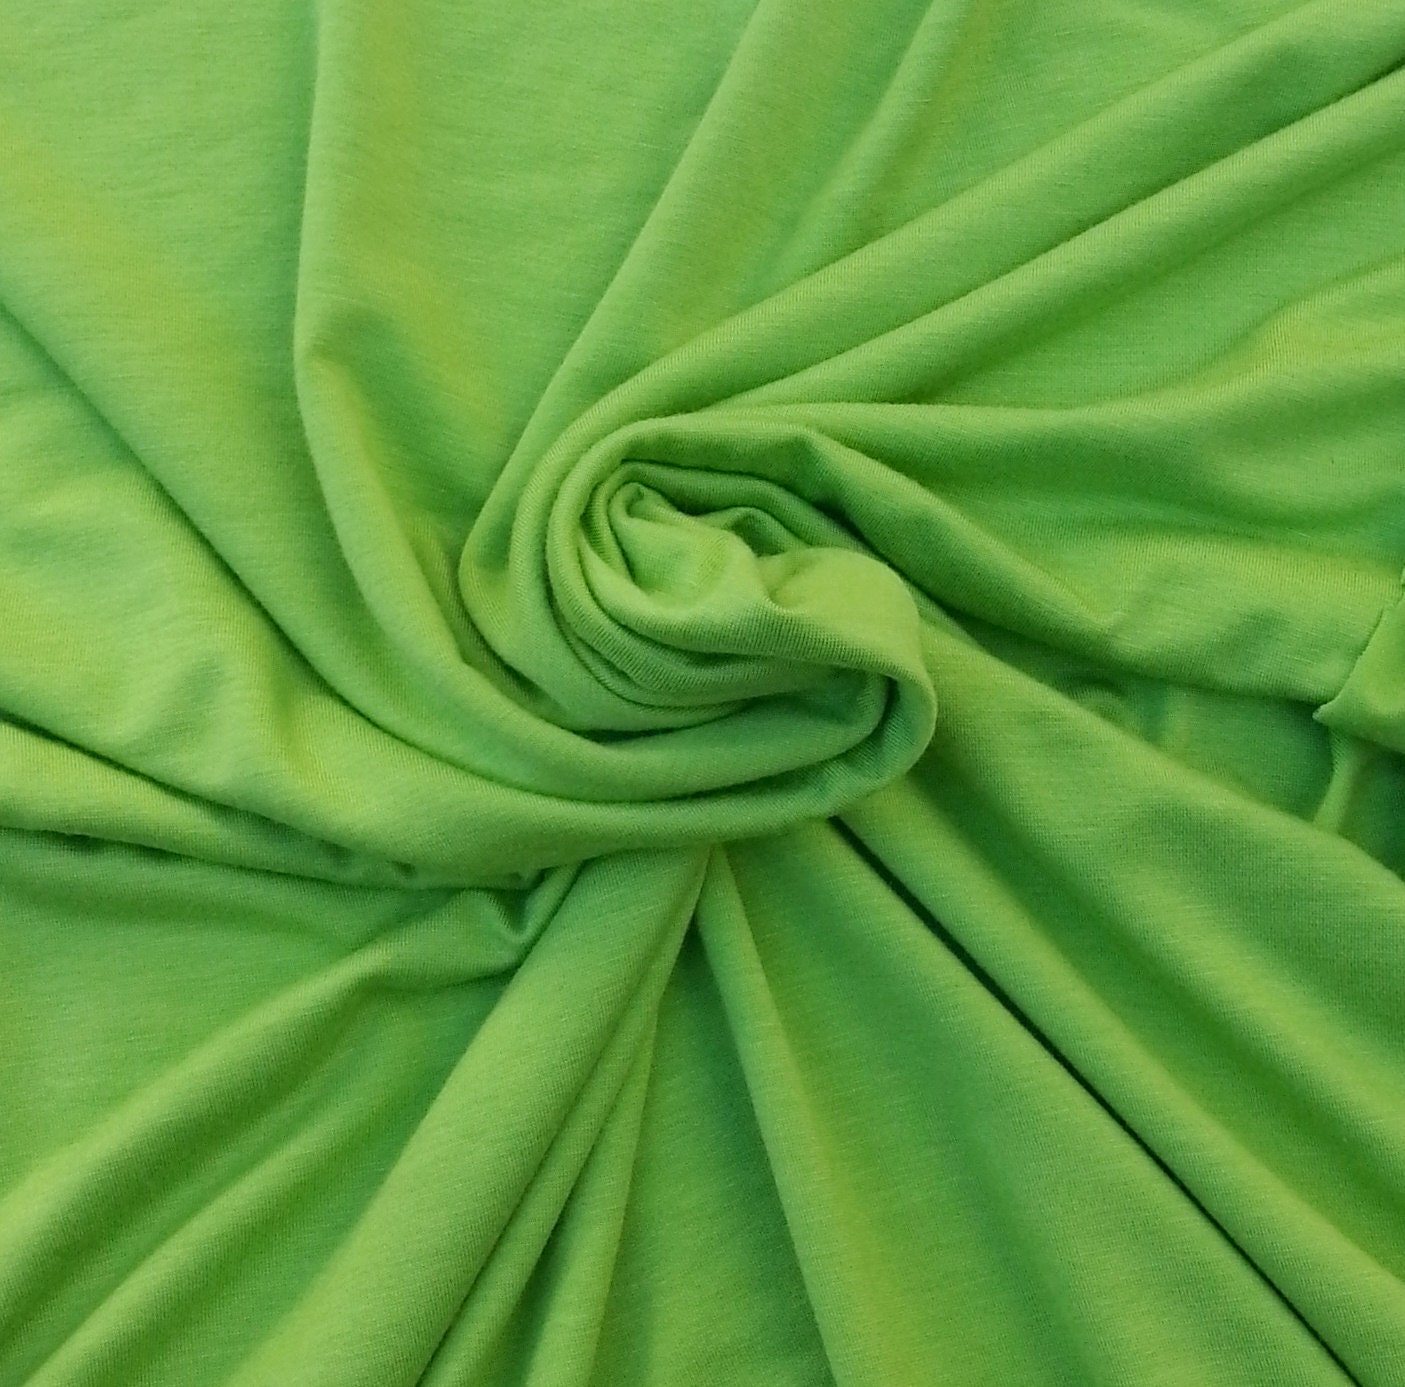 Modal spandex fabric jersey knit by the yard 4 way stretch for Spandex fabric